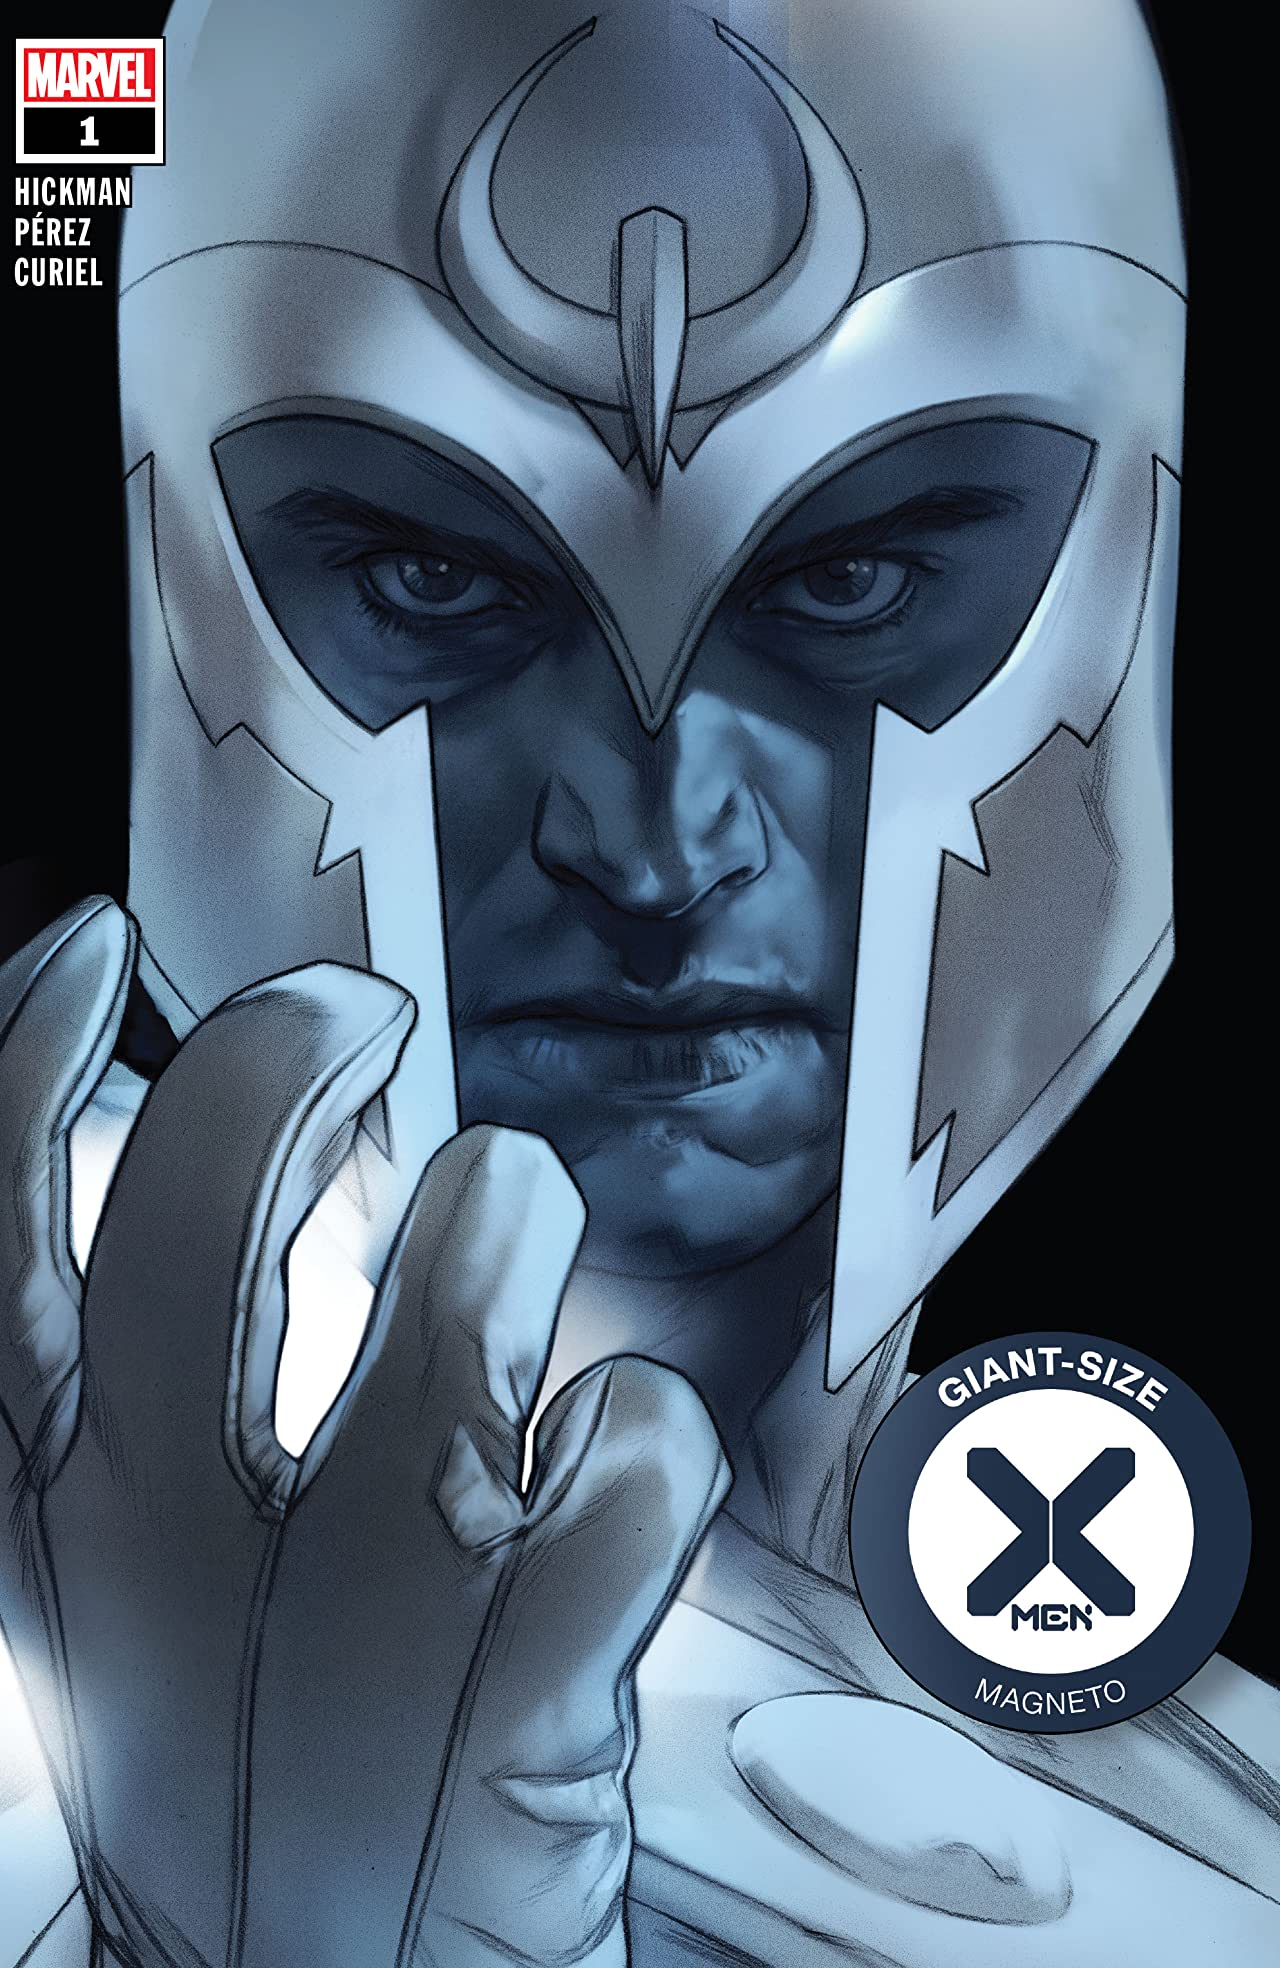 Giant-Size X-Men: Magneto Vol 1 1